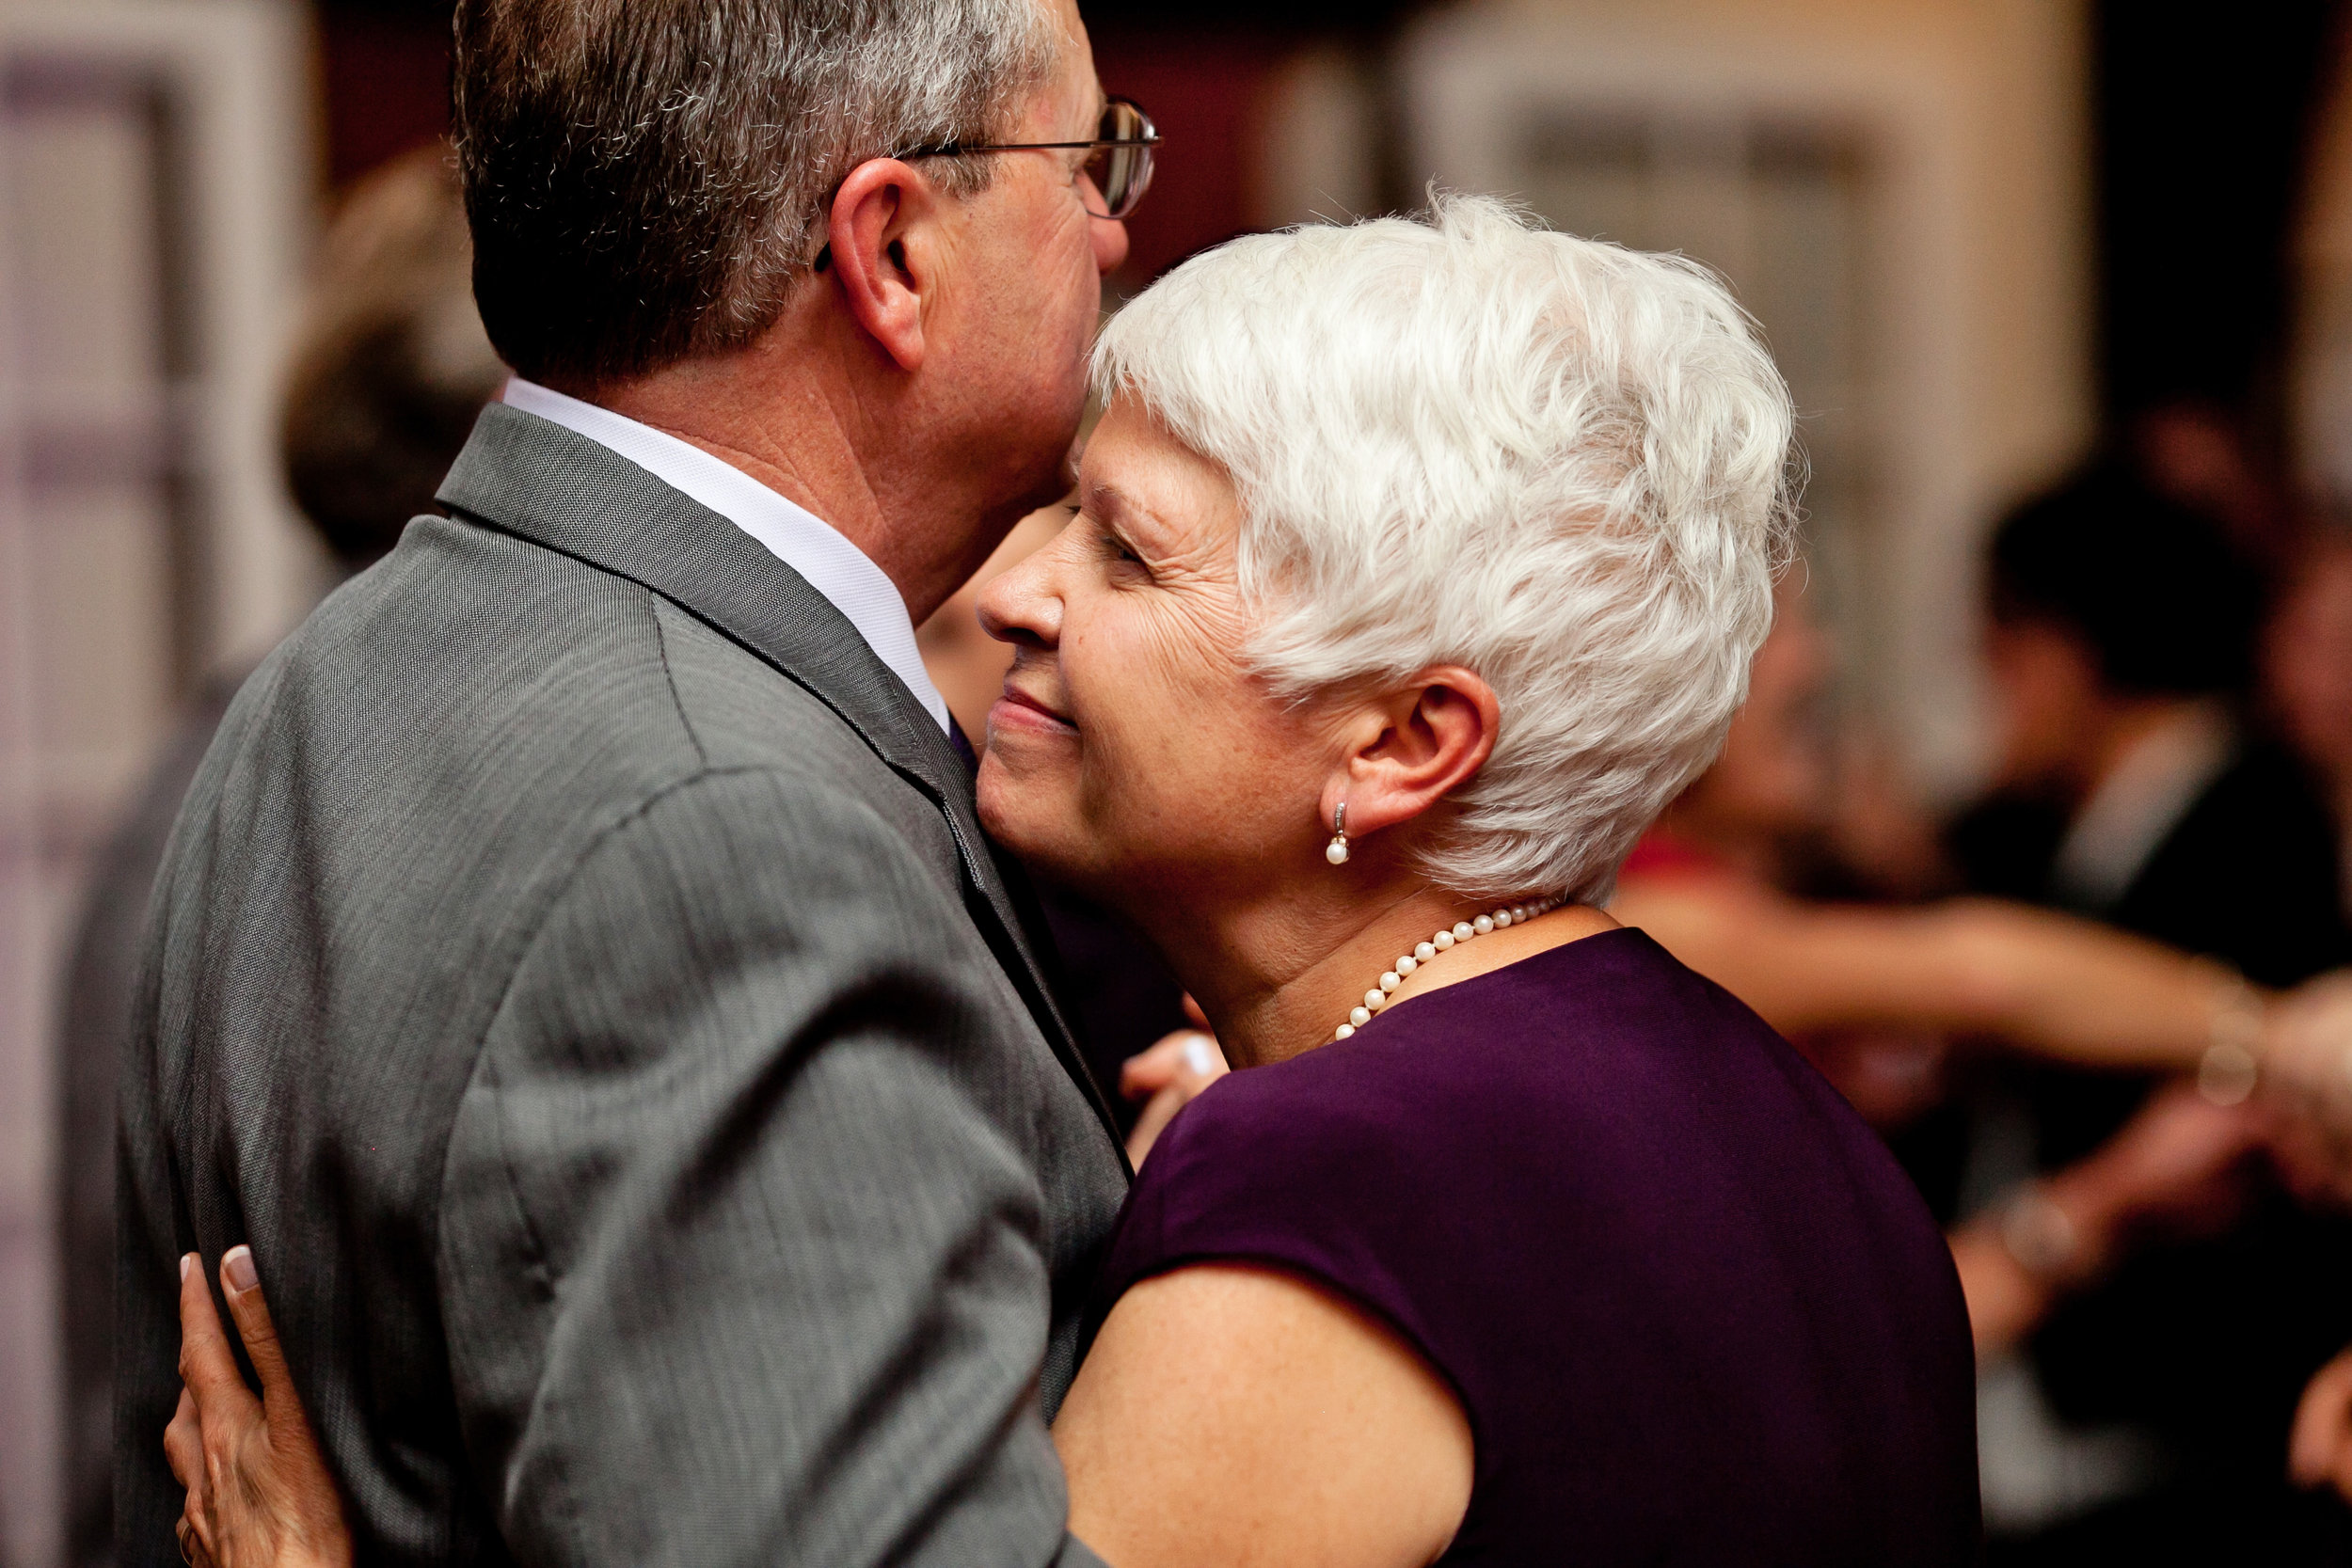 55 mother and father of the bride candid reception photos mother and father of bride dancing Life Design Events .jpg